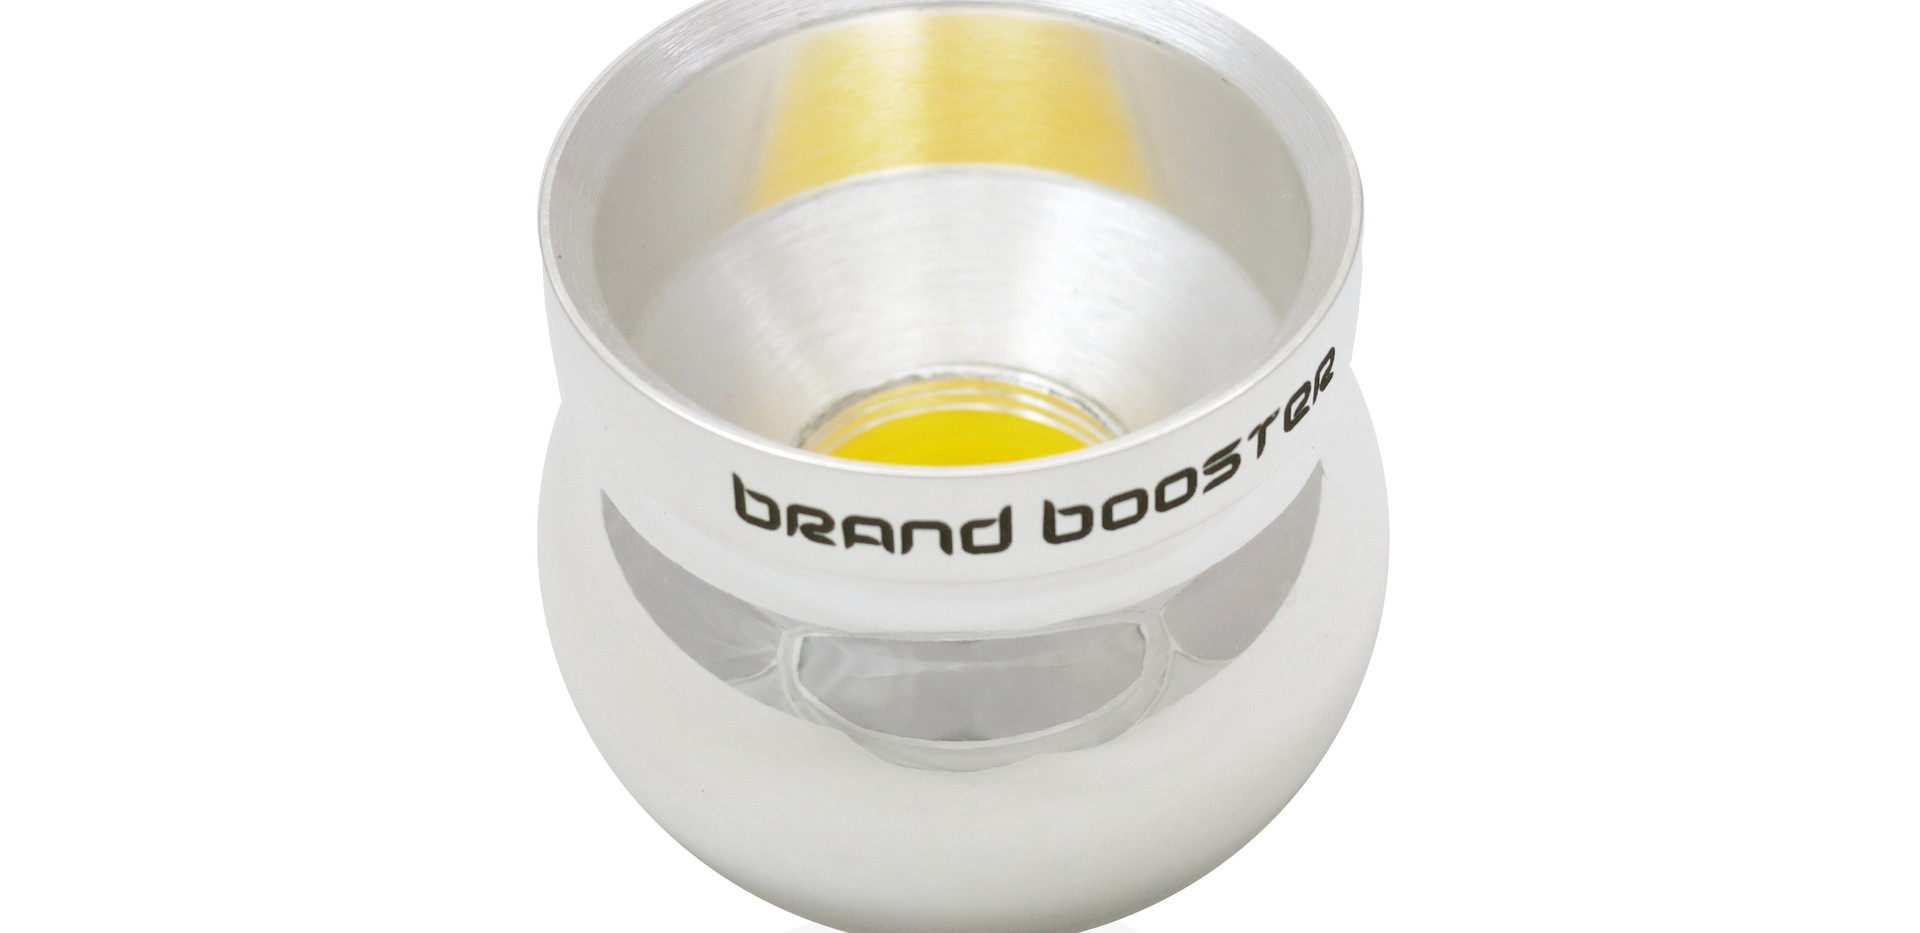 tb Brand Booster Silver polished.JPG